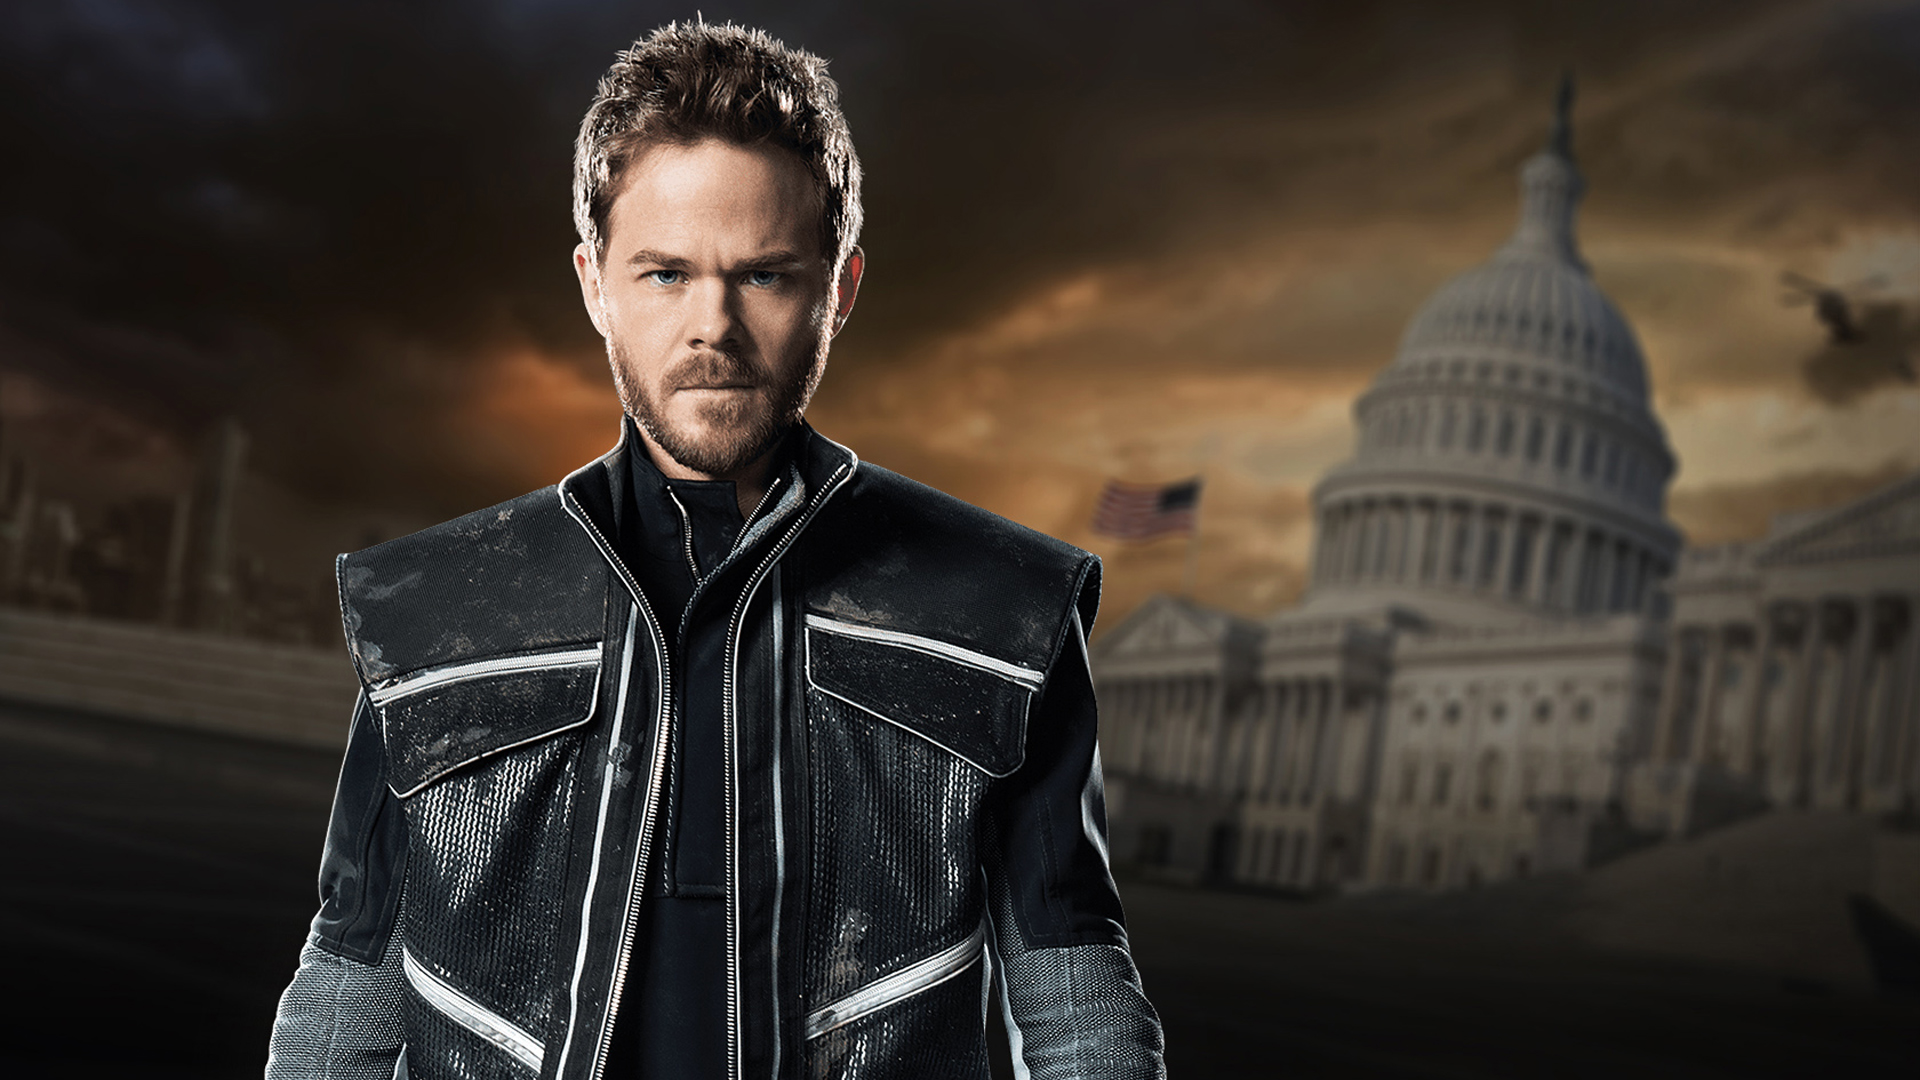 In An Interview With Ign Star Of The Following And X Men Franchise Shawn Ashmore